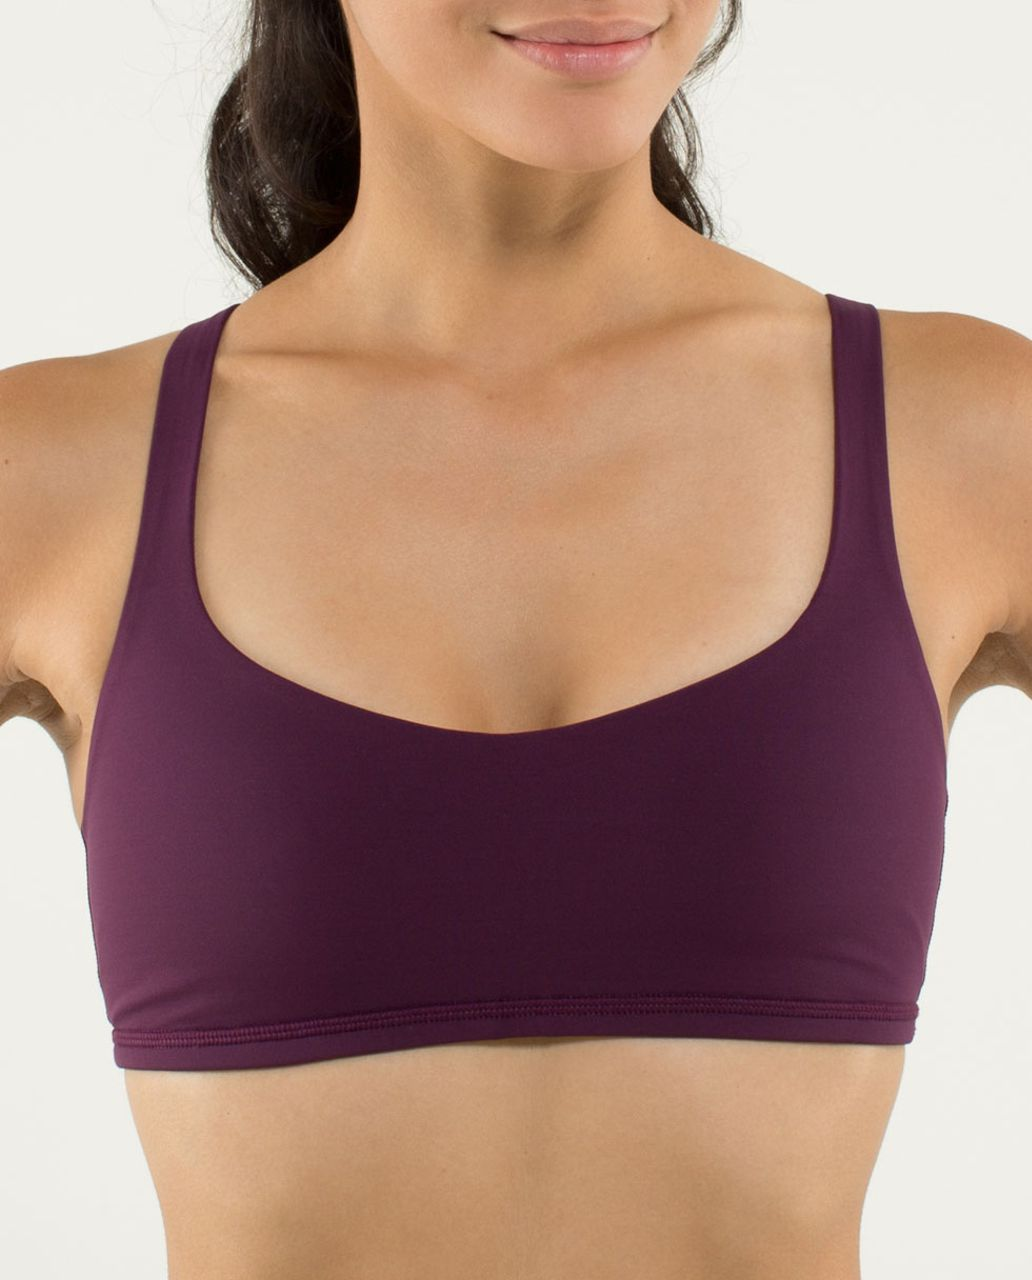 Lululemon Free To Be Bra - Plum